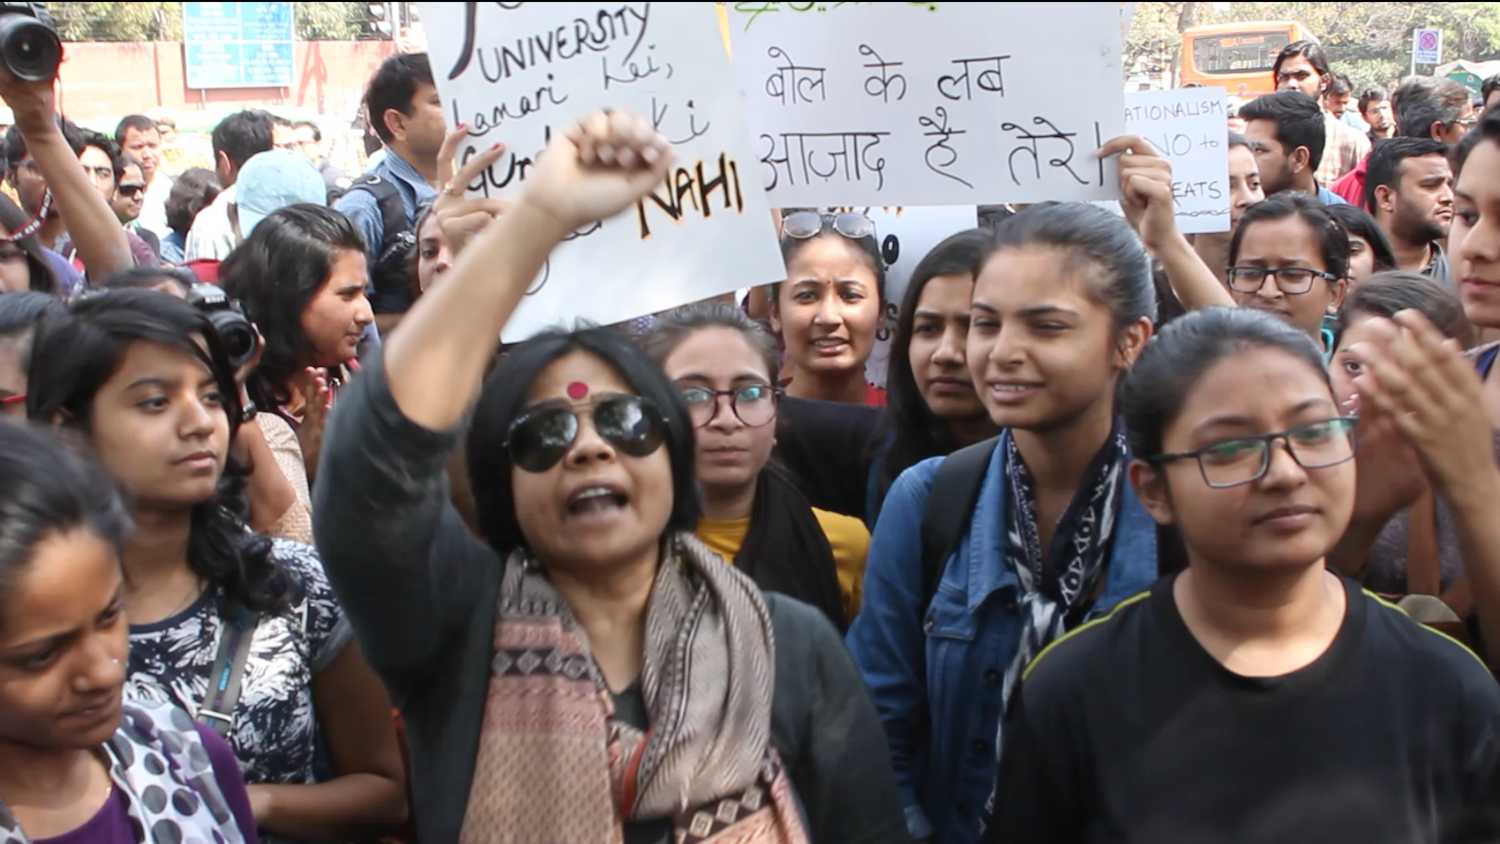 Watch: Delhi University Marches to Stand Its Ground